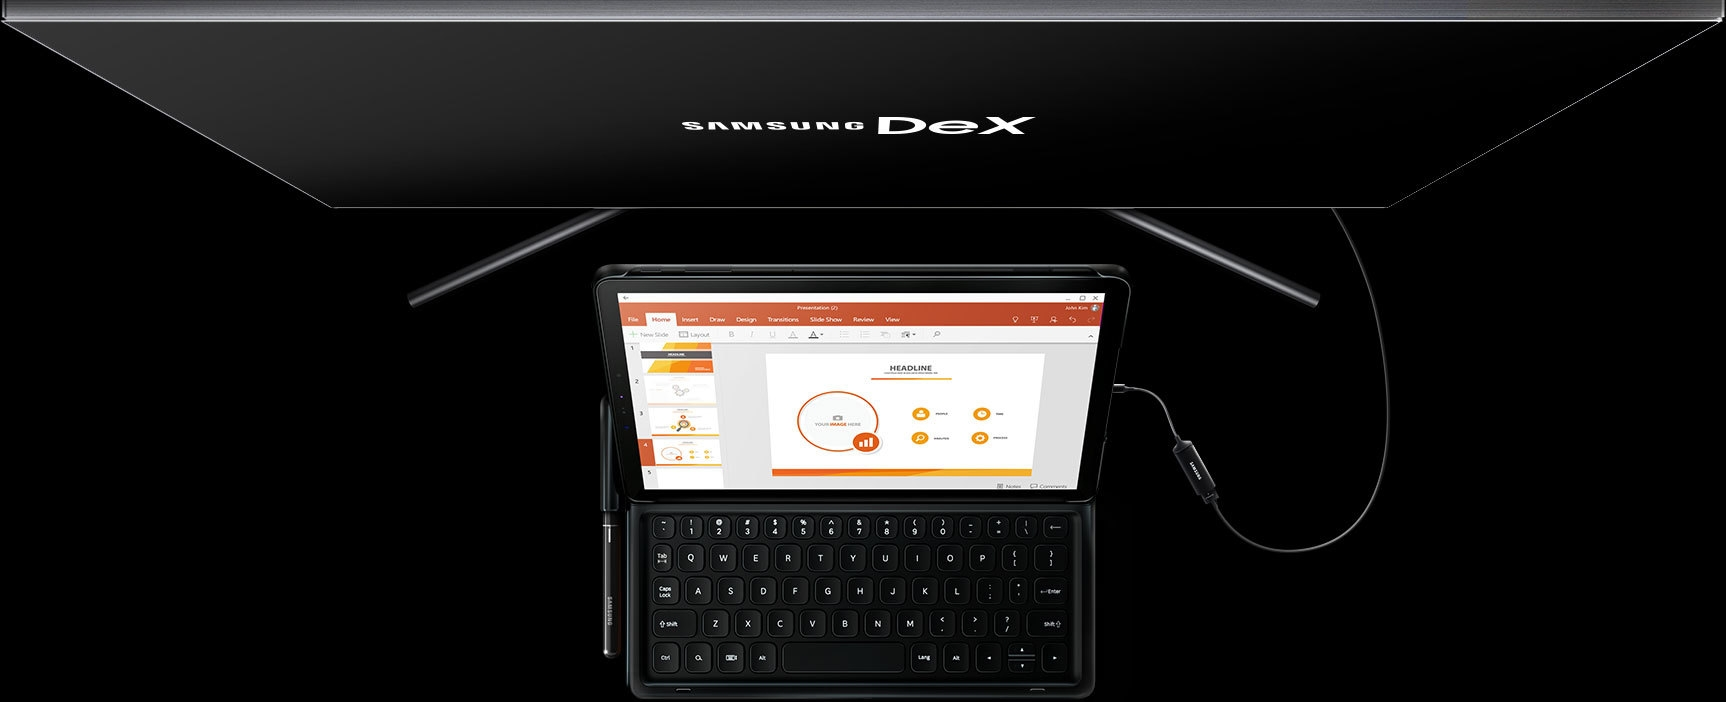 Galaxy Tab S4 with keyboard connected to a large monitor displaying Samsung Dex. A DeX Cable connects the two devices.